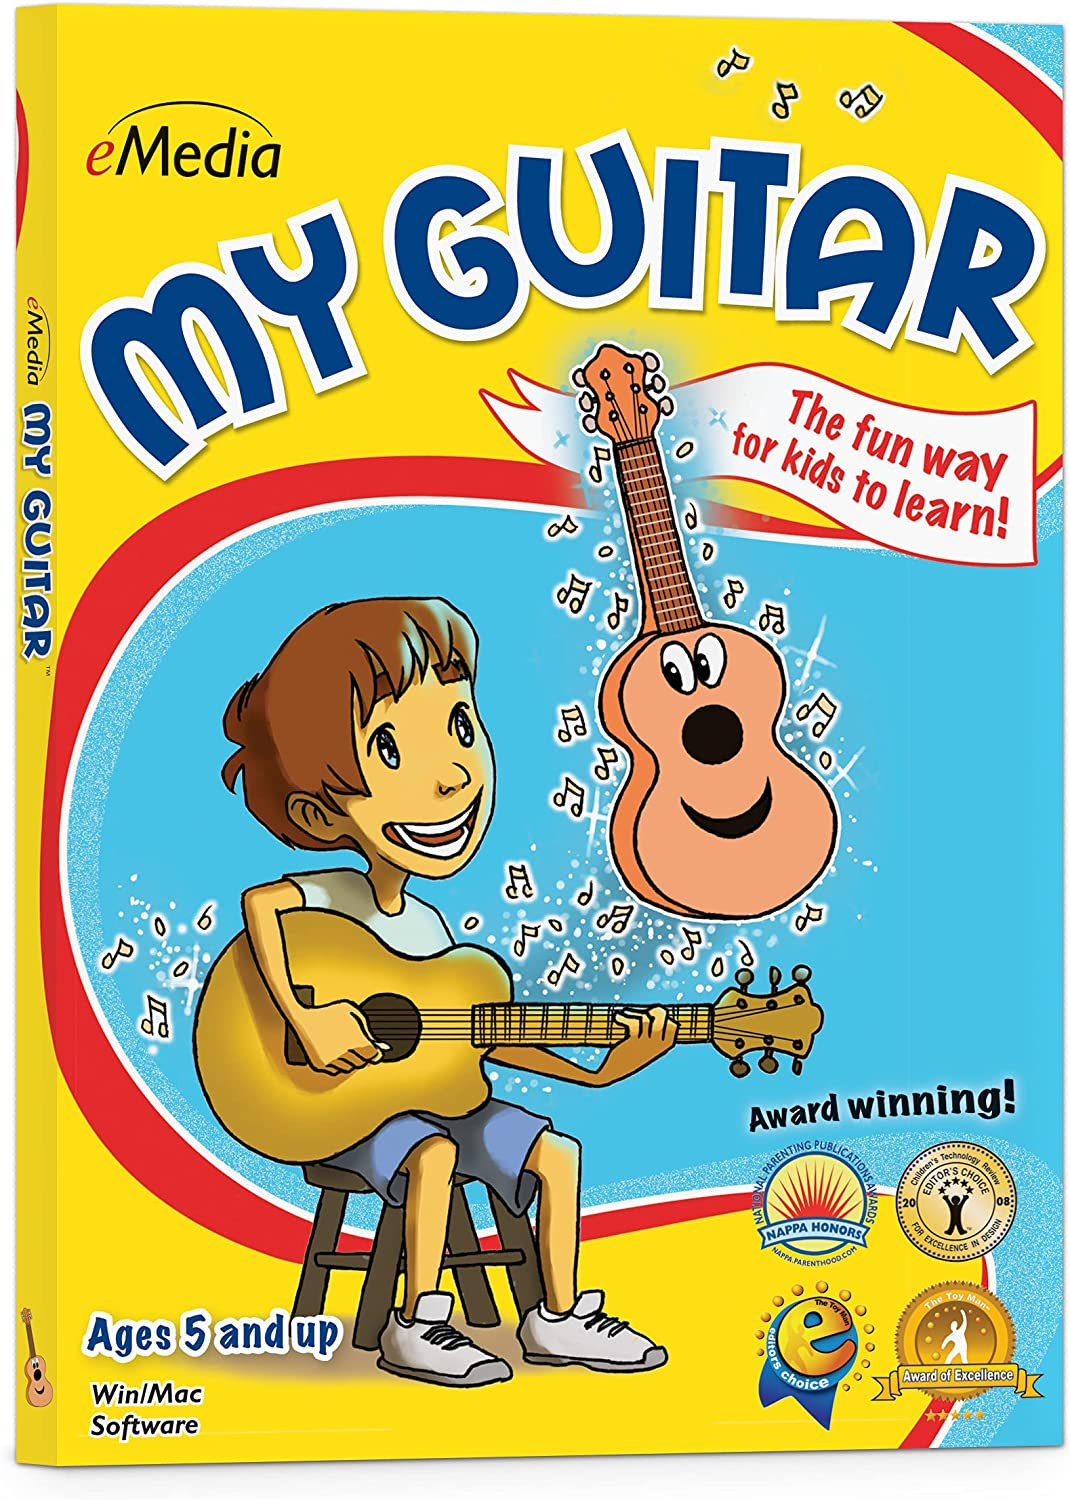 eMedia My Guitar v2 - at Limited time trial price Learn Denver Mall Home